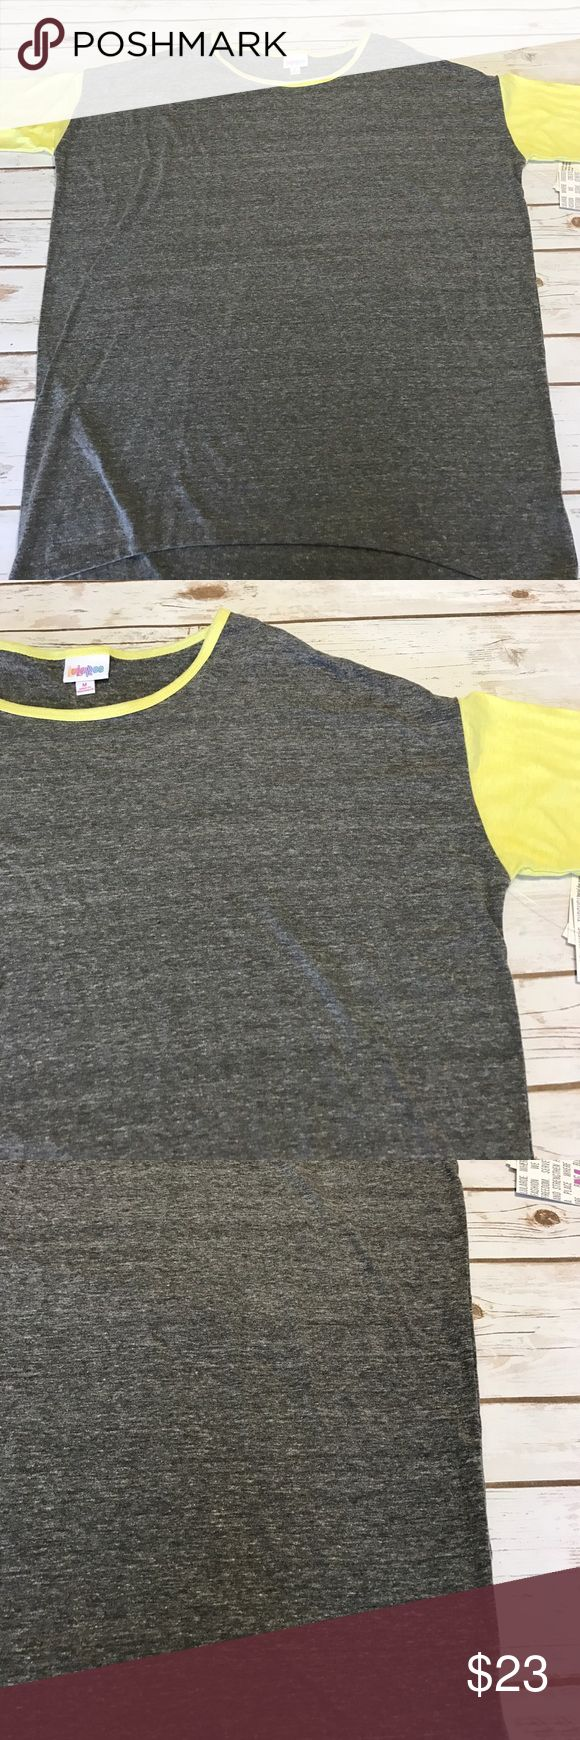 "Brand New LuLaRoe Irma M Brand New LuLaRoe Irma size M. 27"" across under the arms. 35"" length from the tip of shoulder to the bottom of the back hem. The yellow fabric on the collar of this shirt is thin and only one layer over the bias trim on the grey body. Therefore it casts a shadow under the yellow and to me makes the collar in certain lights appear almost like it might be dirty because the grey shows through the yellow. But the shirt is not dirt or stained. It is brand new. It is only…"